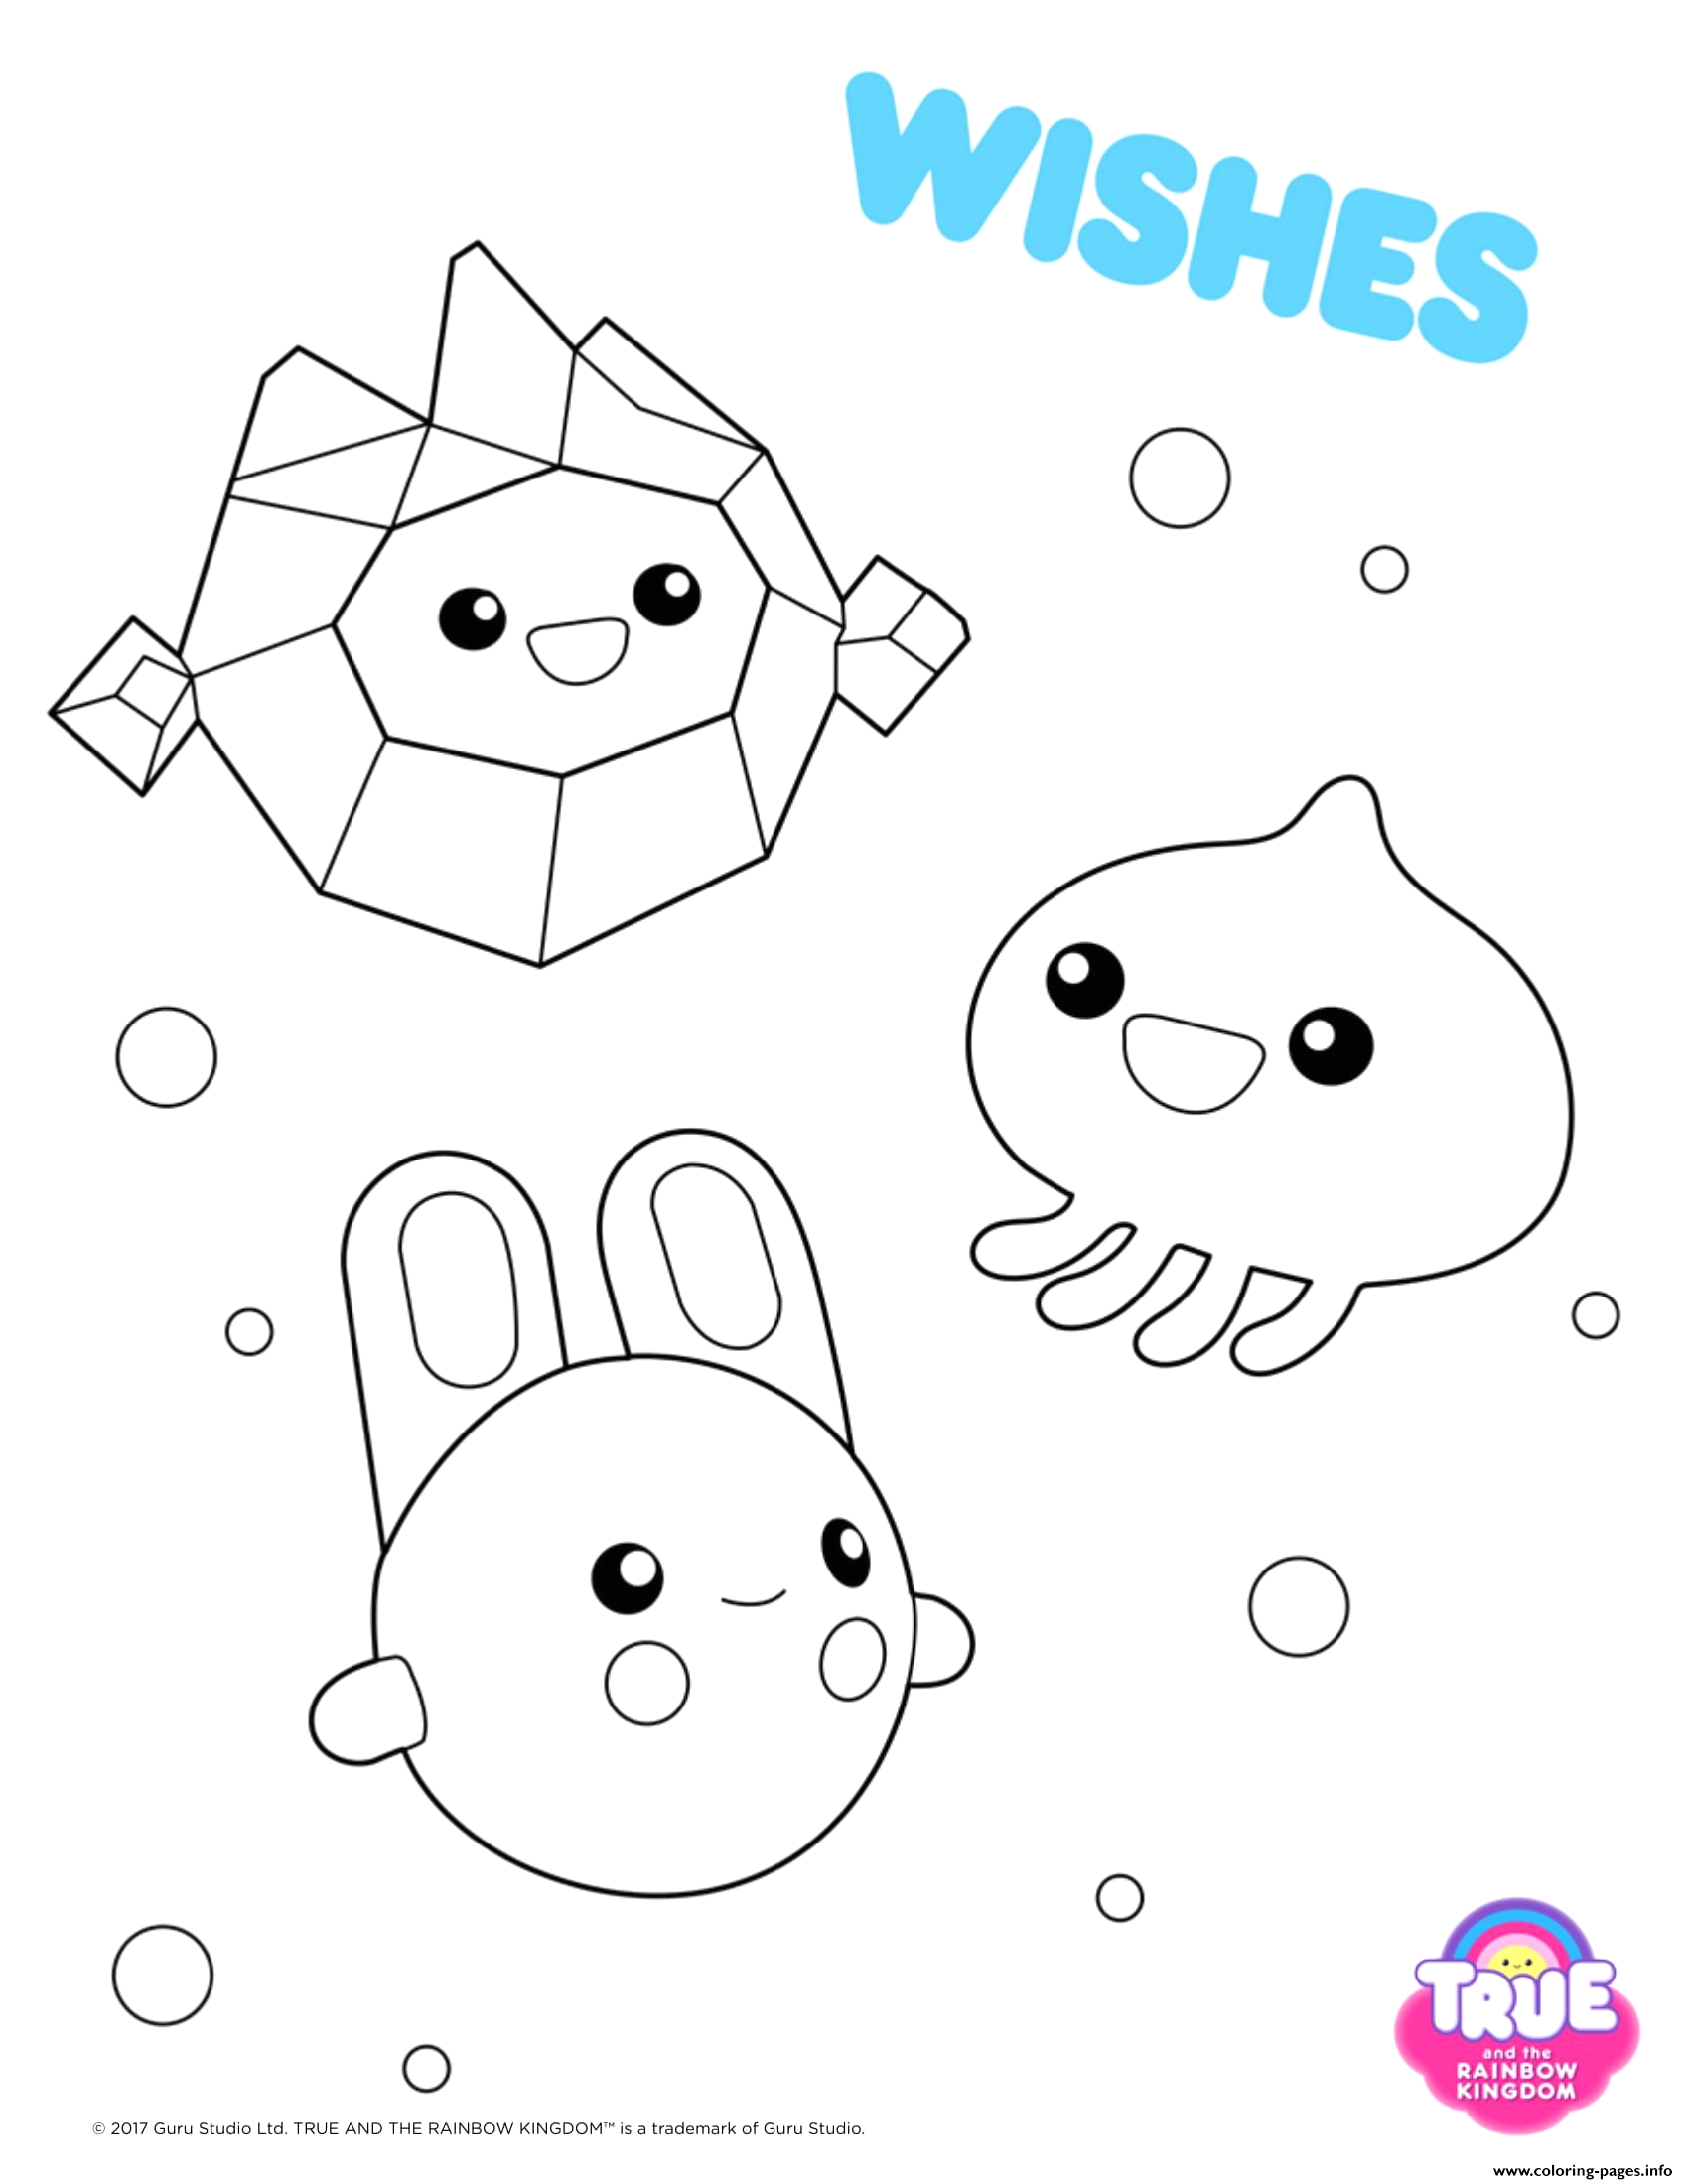 True and the Rainbow Kingdom Coloring Pages Wishes Wishes 1 True and the Rainbow Kingdom Coloring Pages Printable